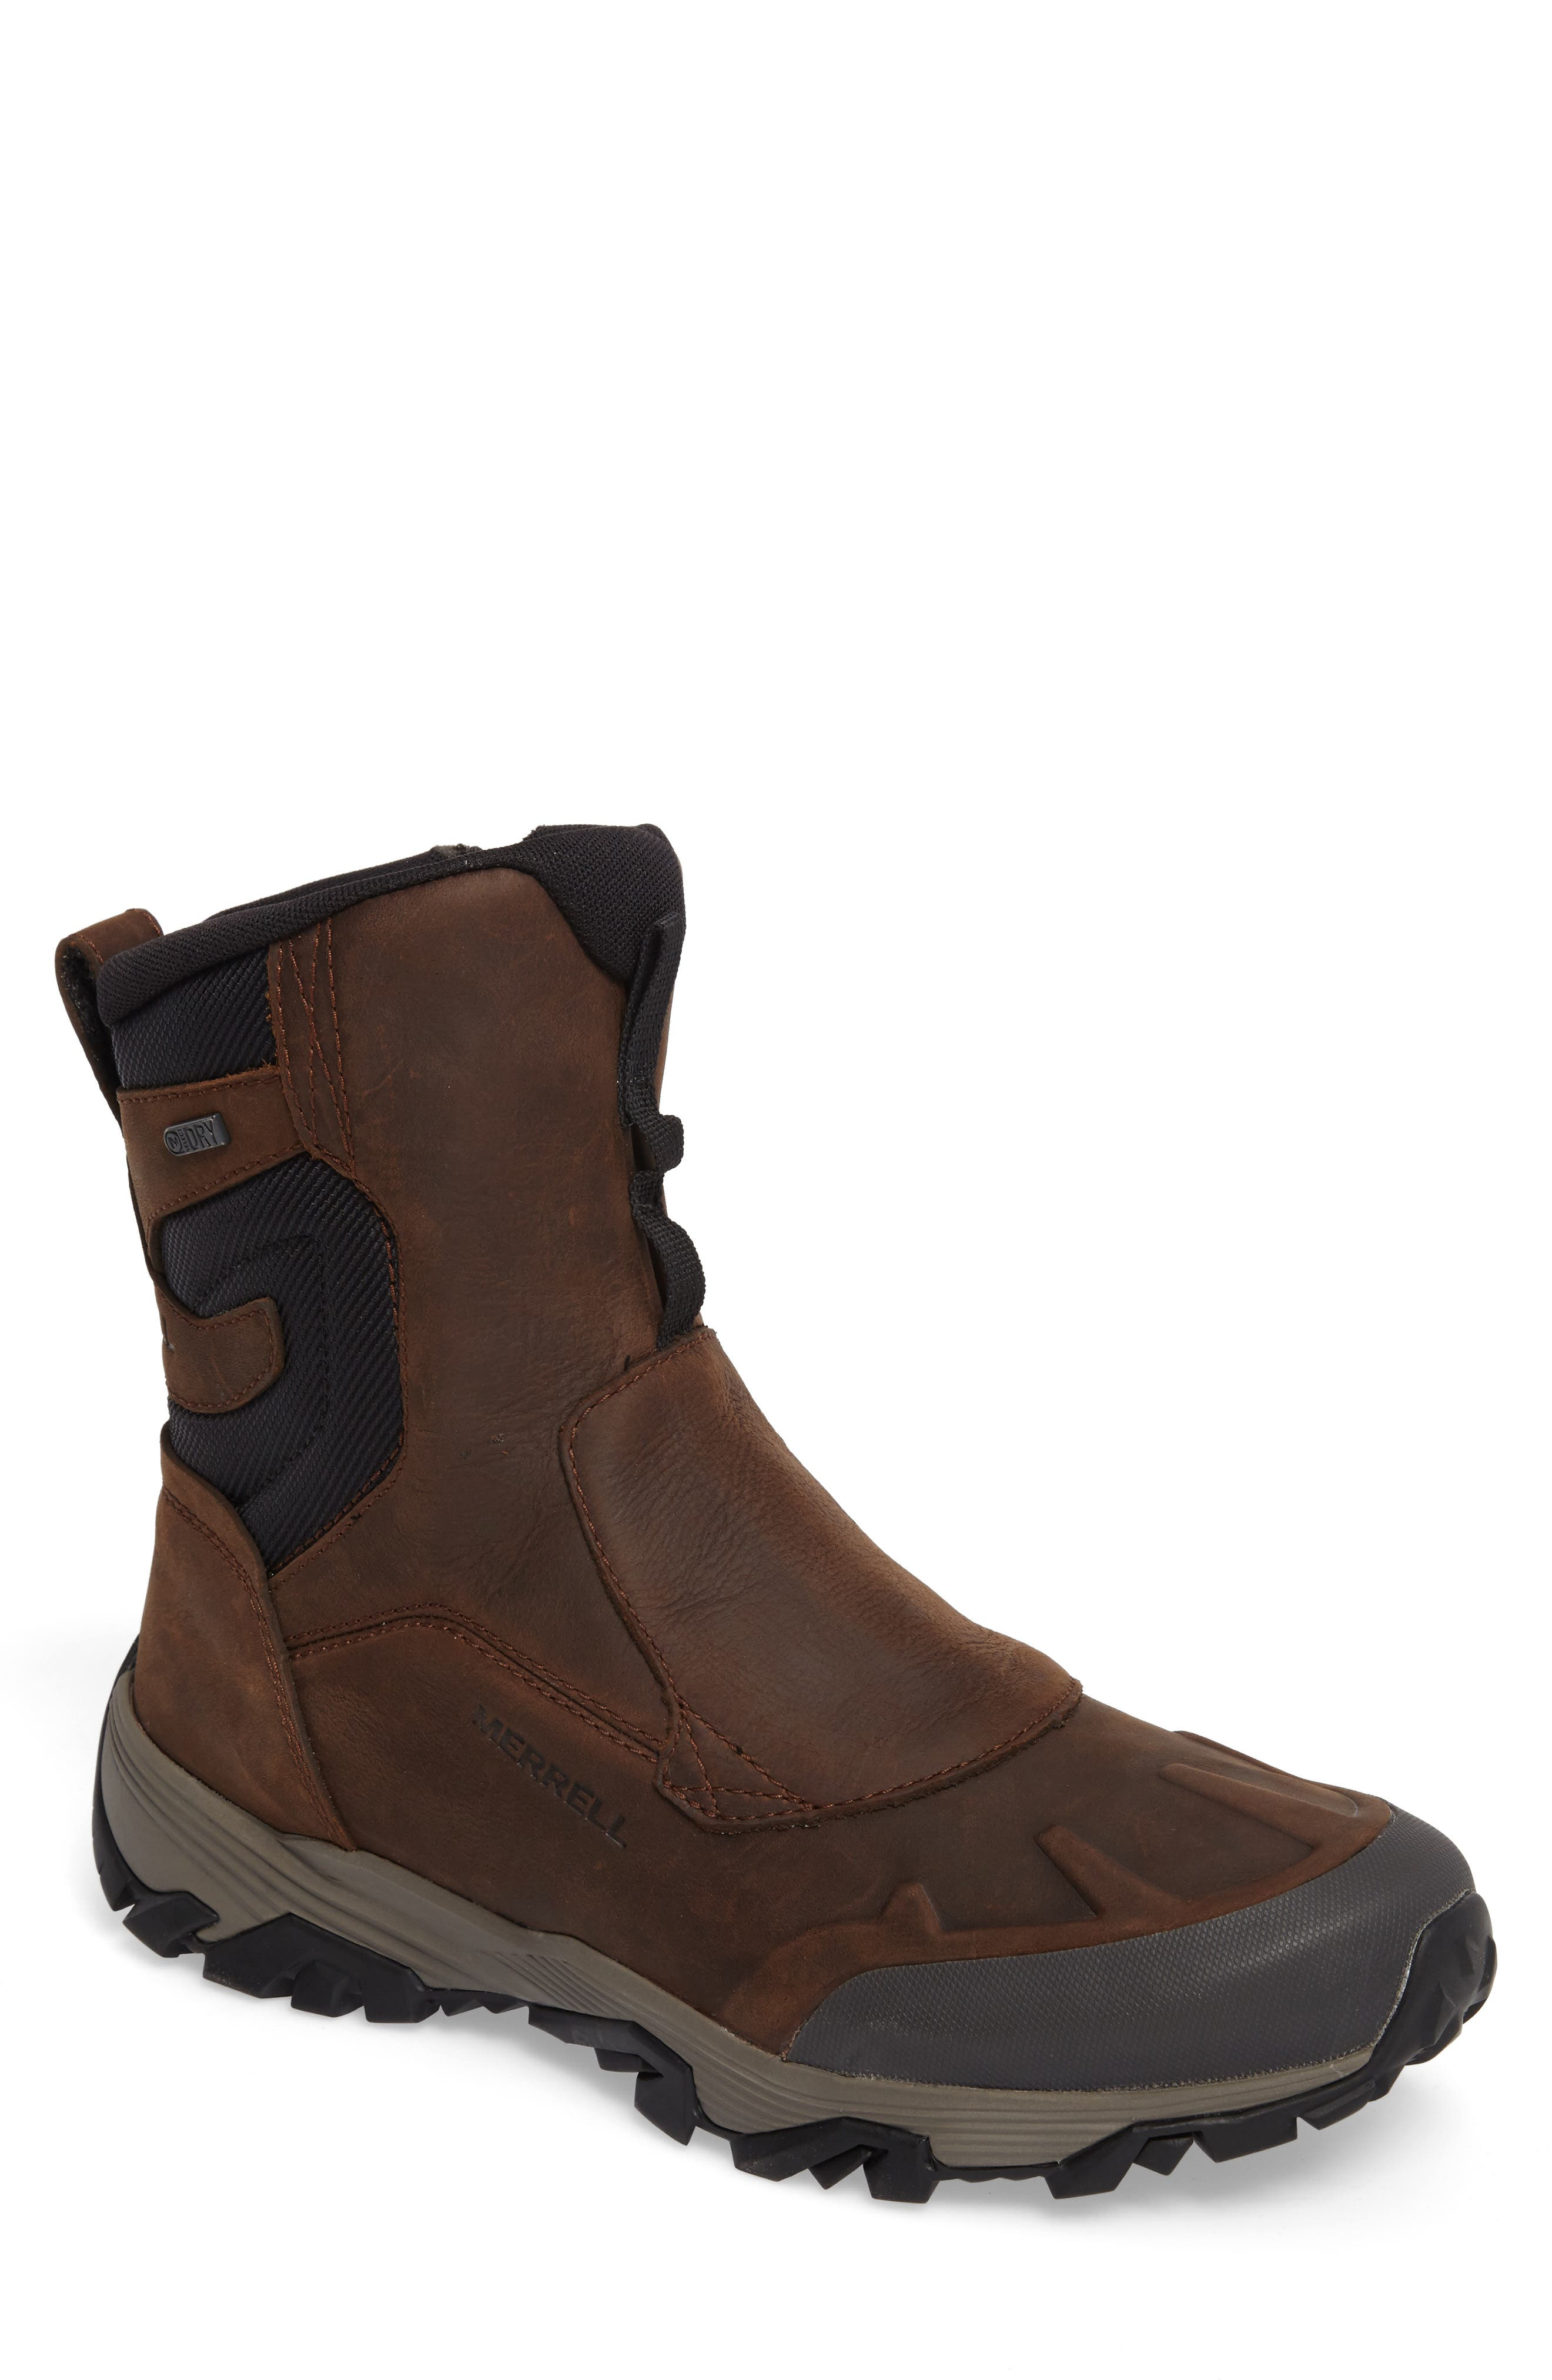 Main Image - Merrell Cold Pack Ice Boot (Men)